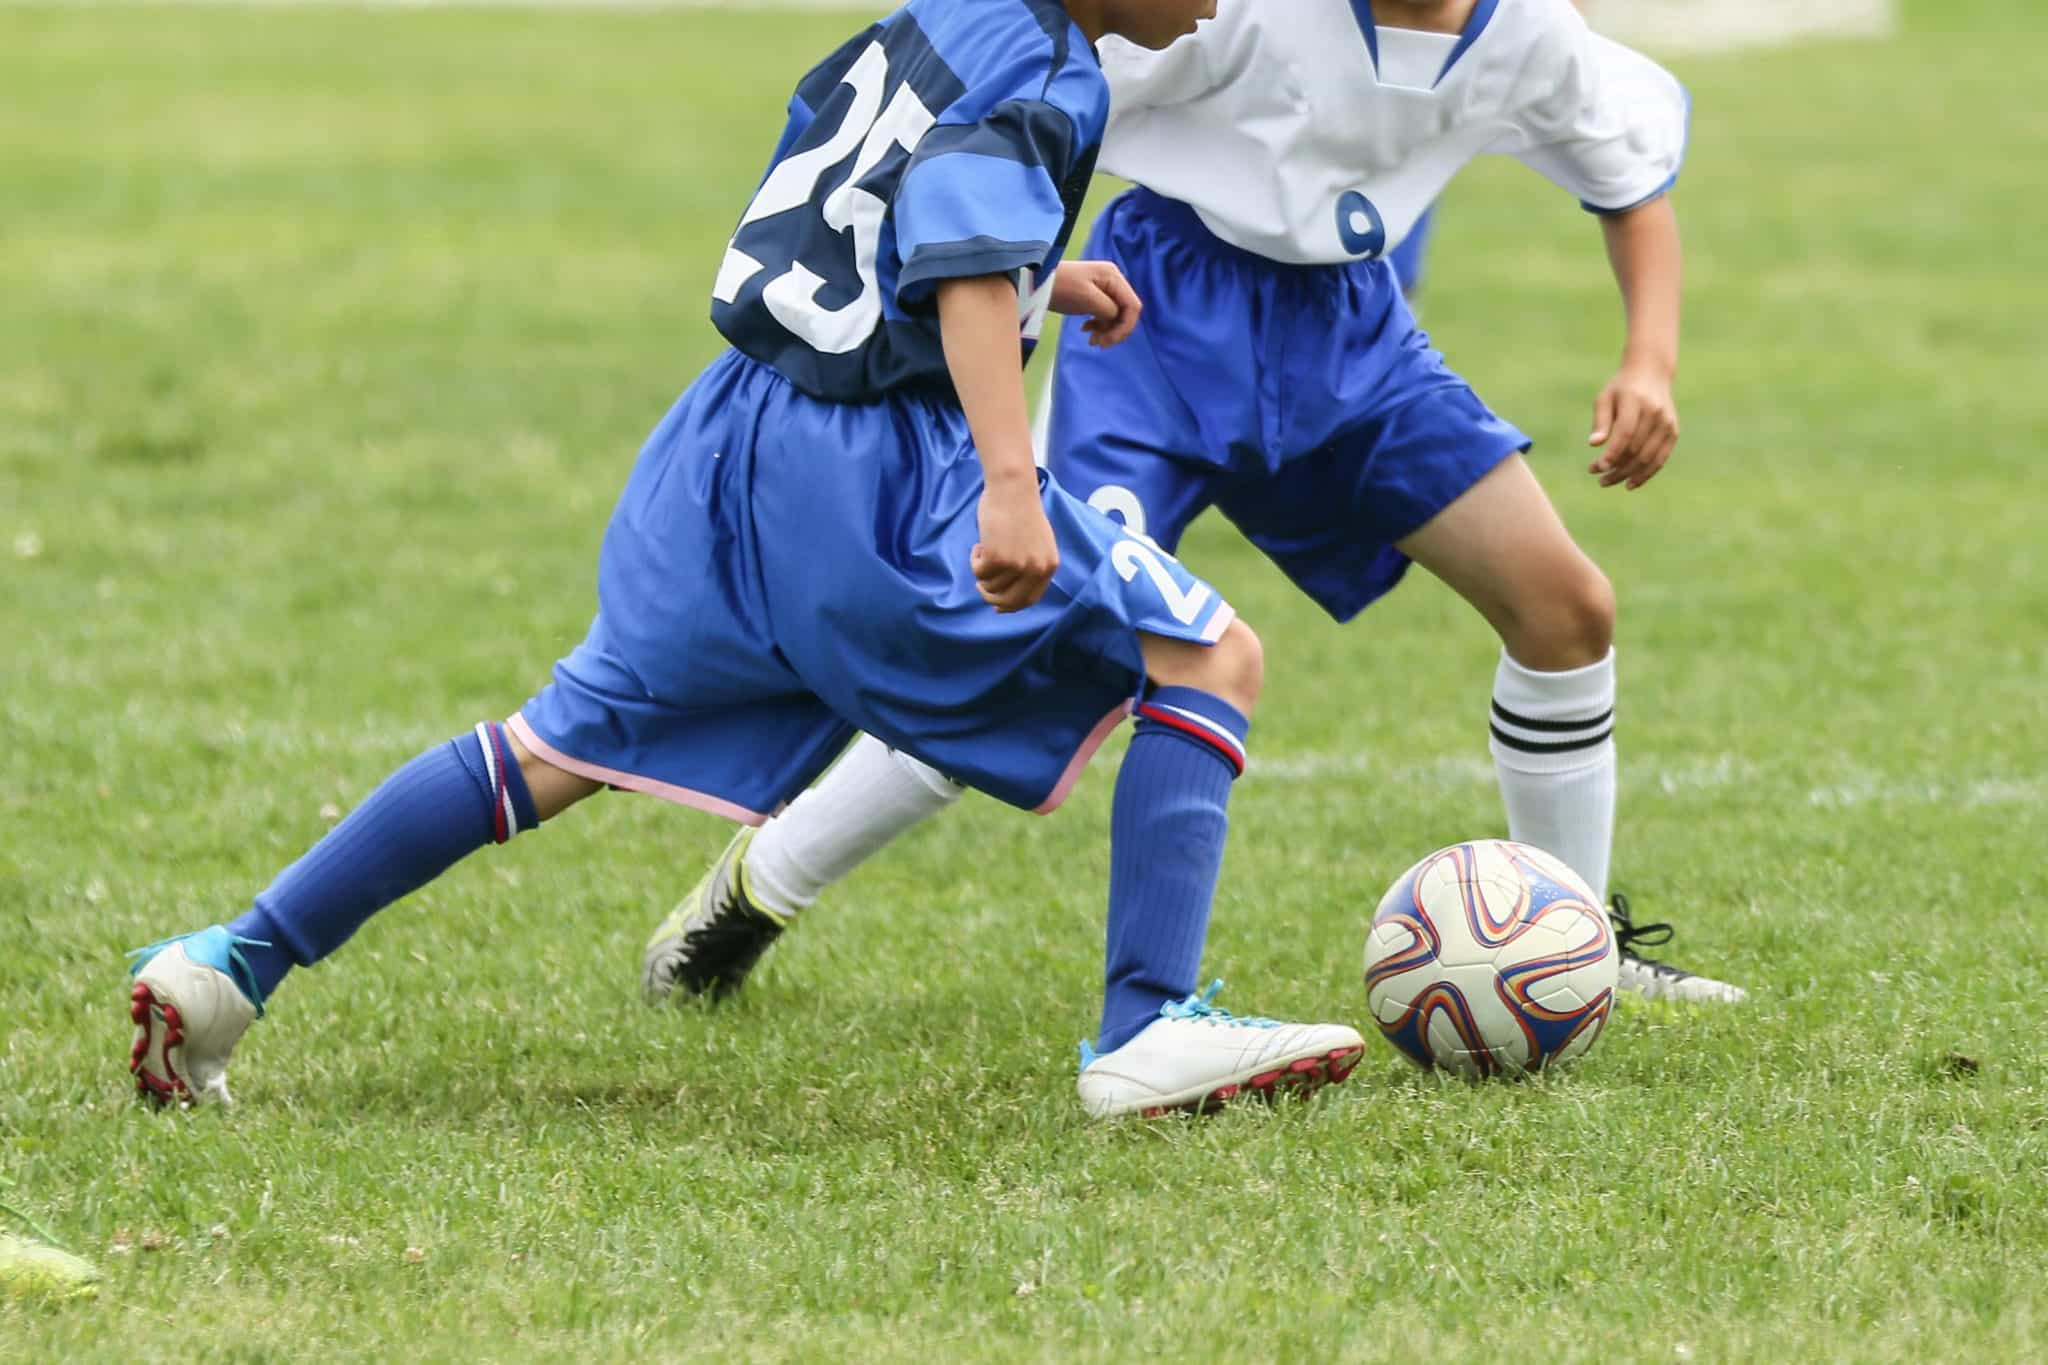 Soccer Center Midfielder Guide - A Soccer Player's Complete